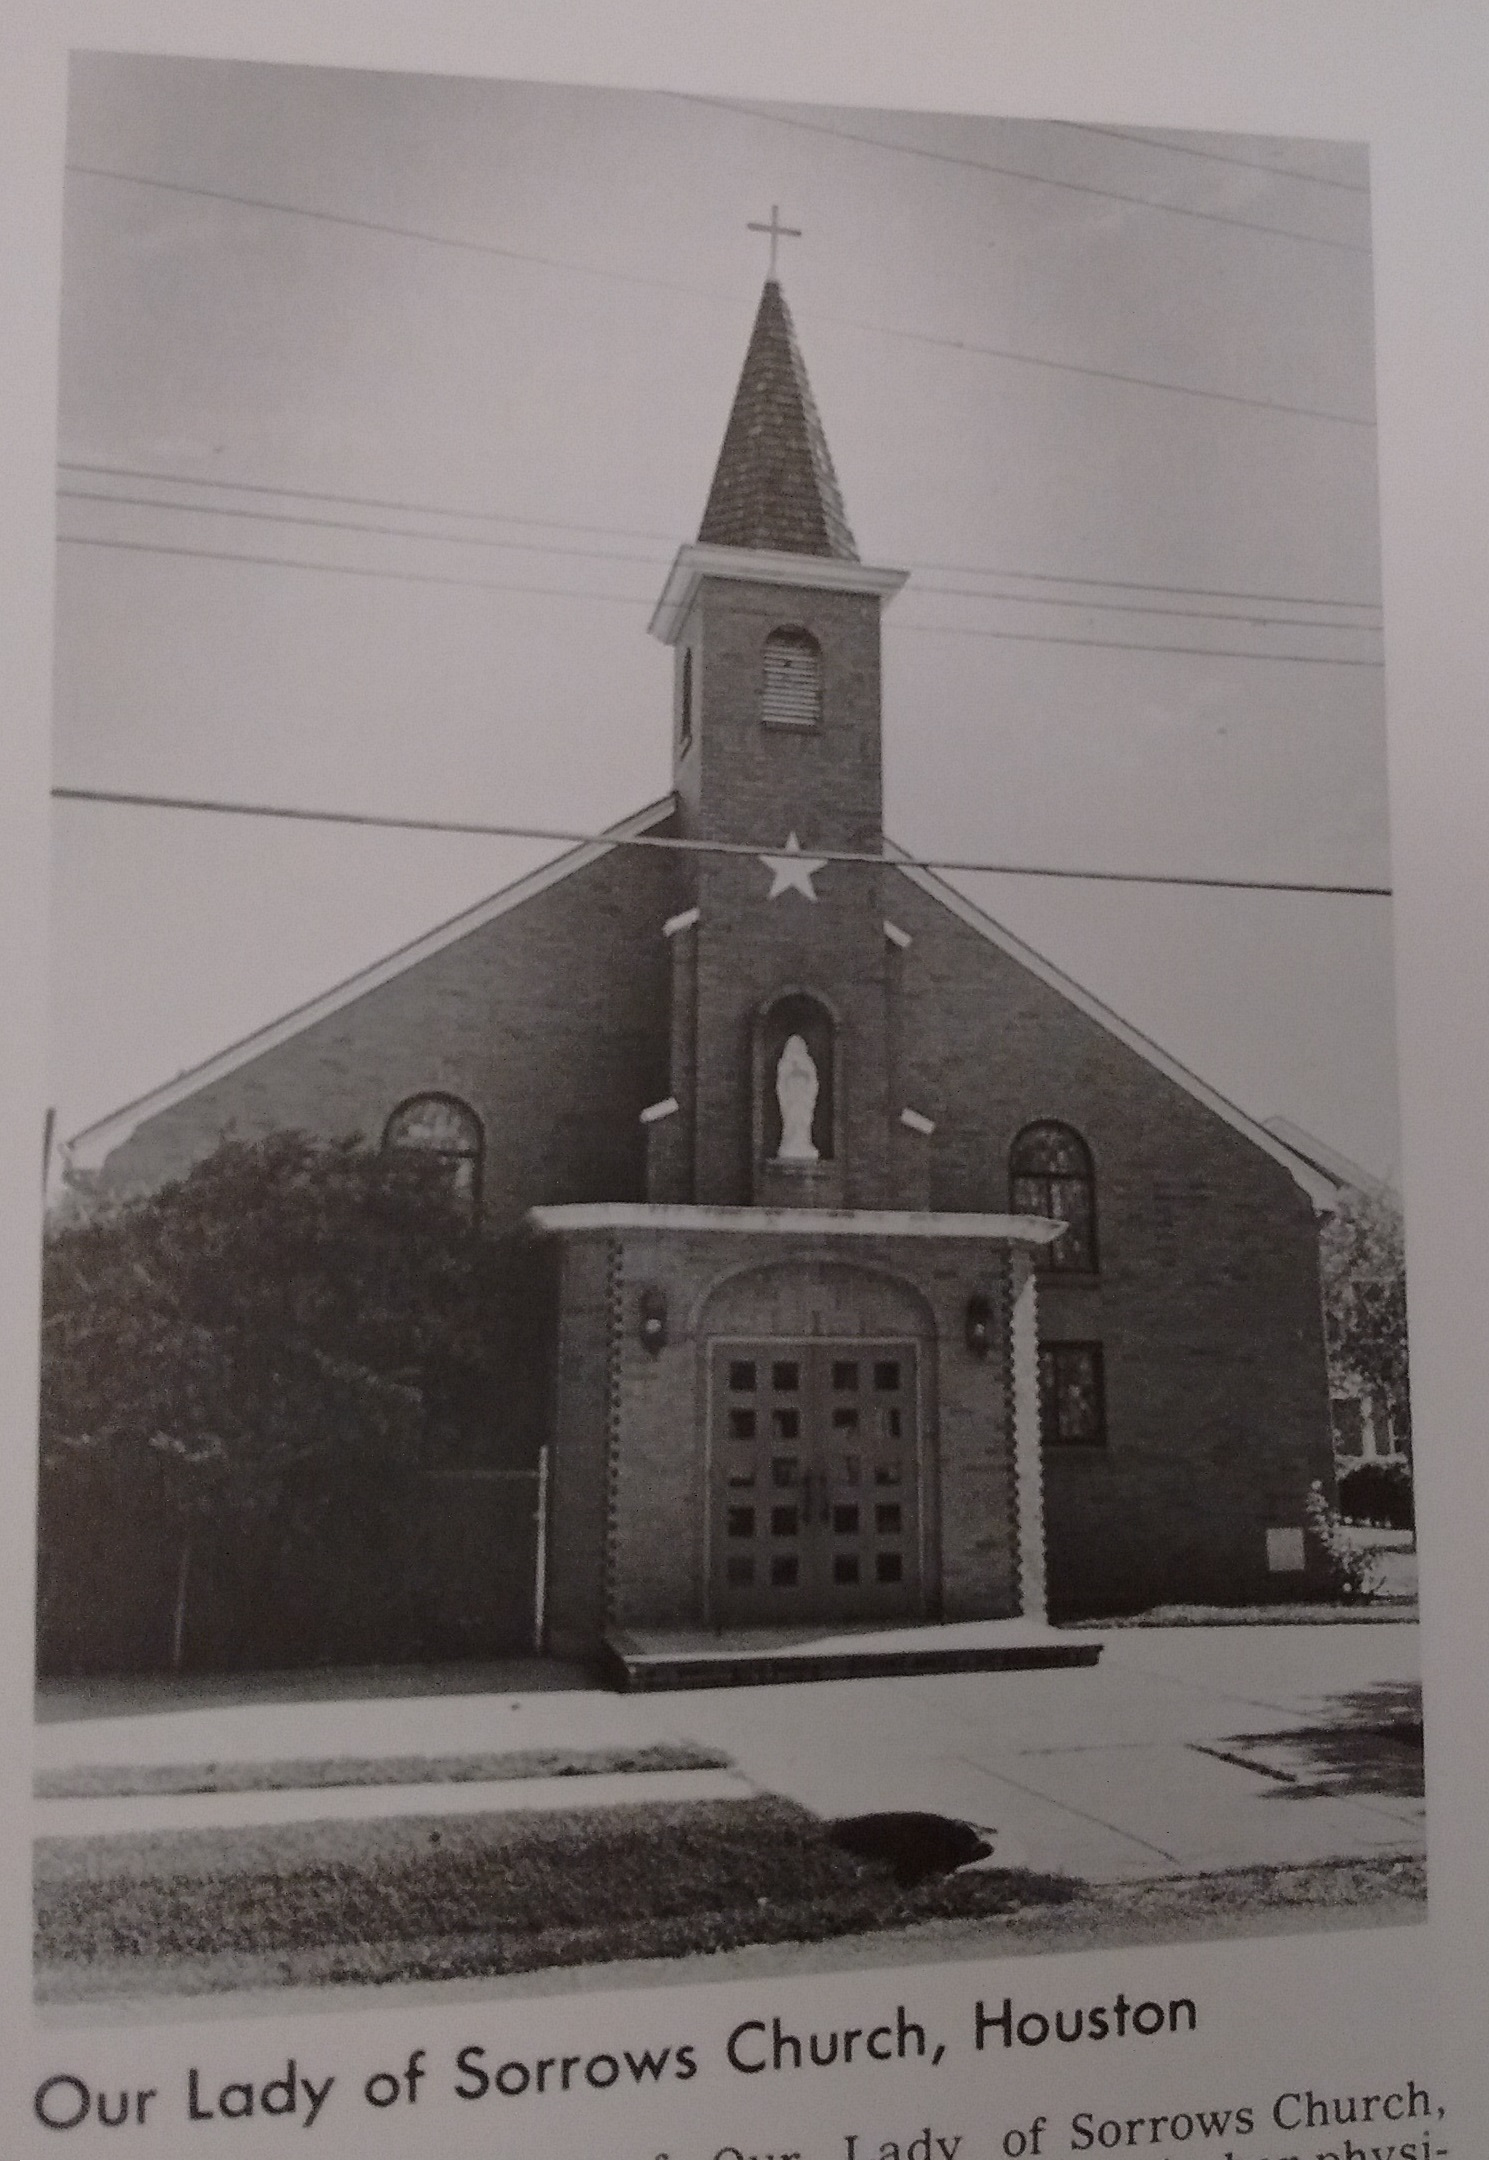 Photo of Our Lady of Sorrows Church circa 1970